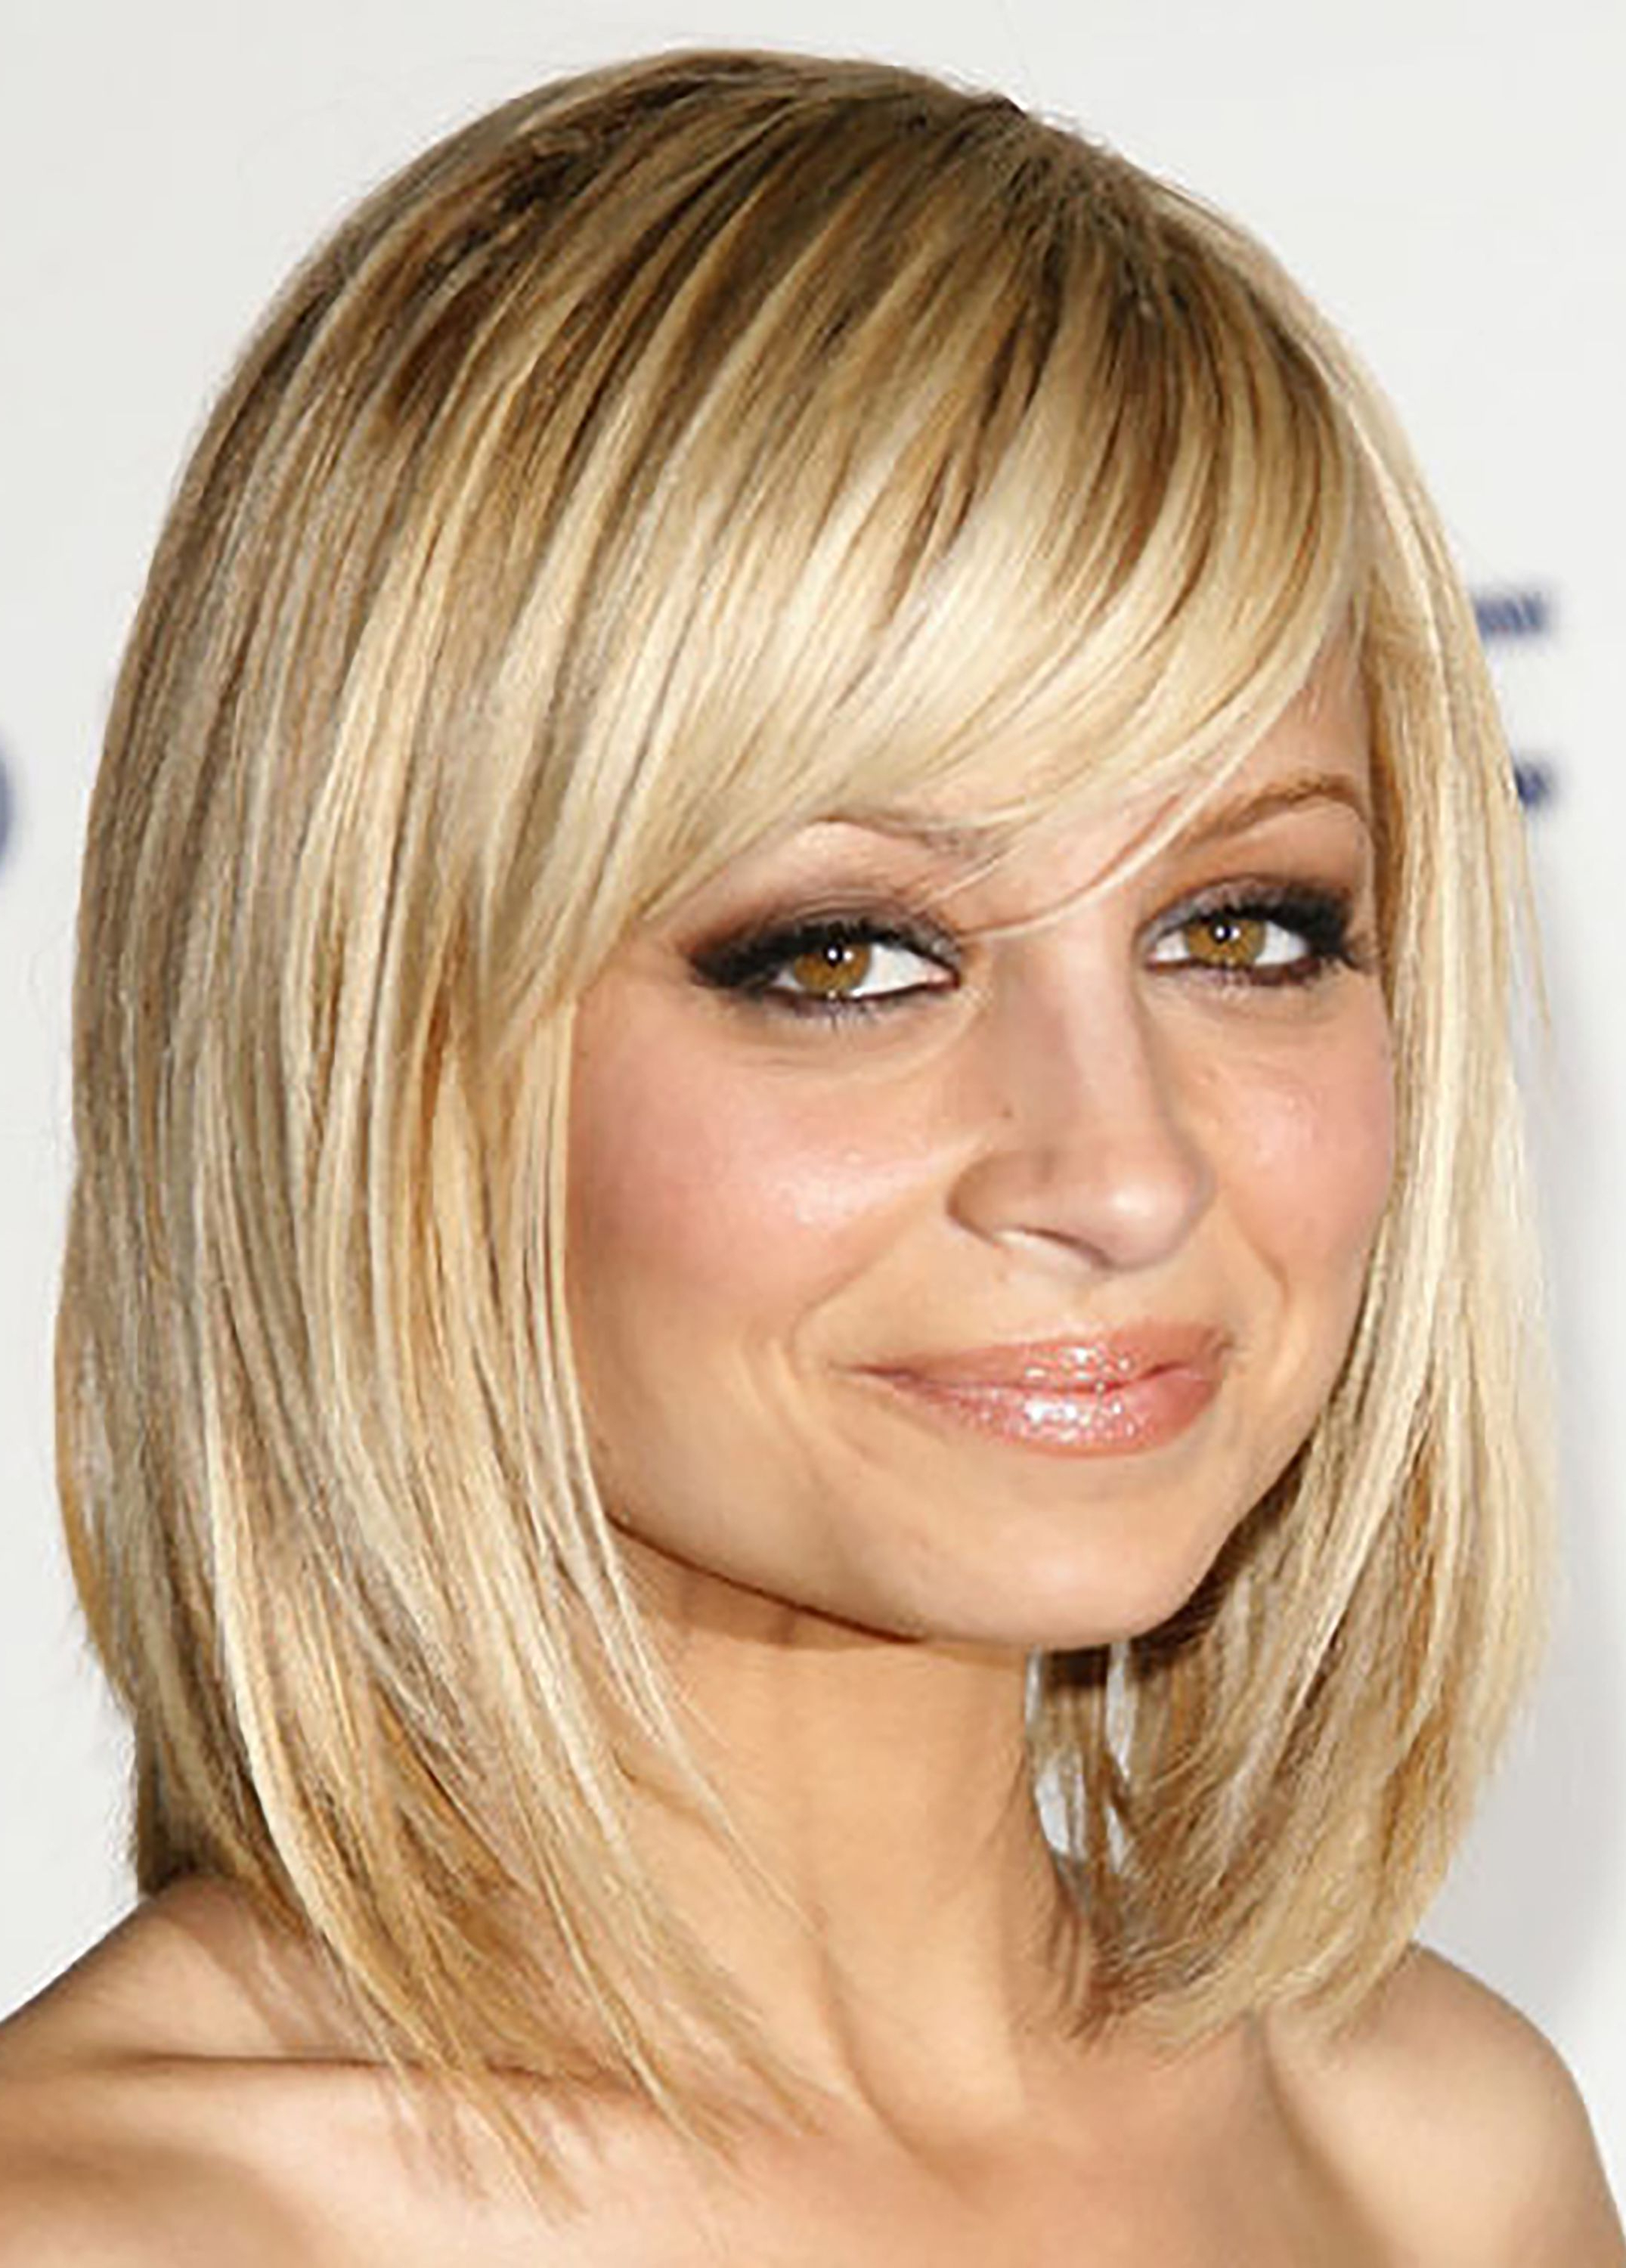 2020 Medium Pixie Hairstyles With Bangs With 35 Cute Short Haircuts For Women 2019 – Easy Short Female Hairstyle (View 3 of 20)